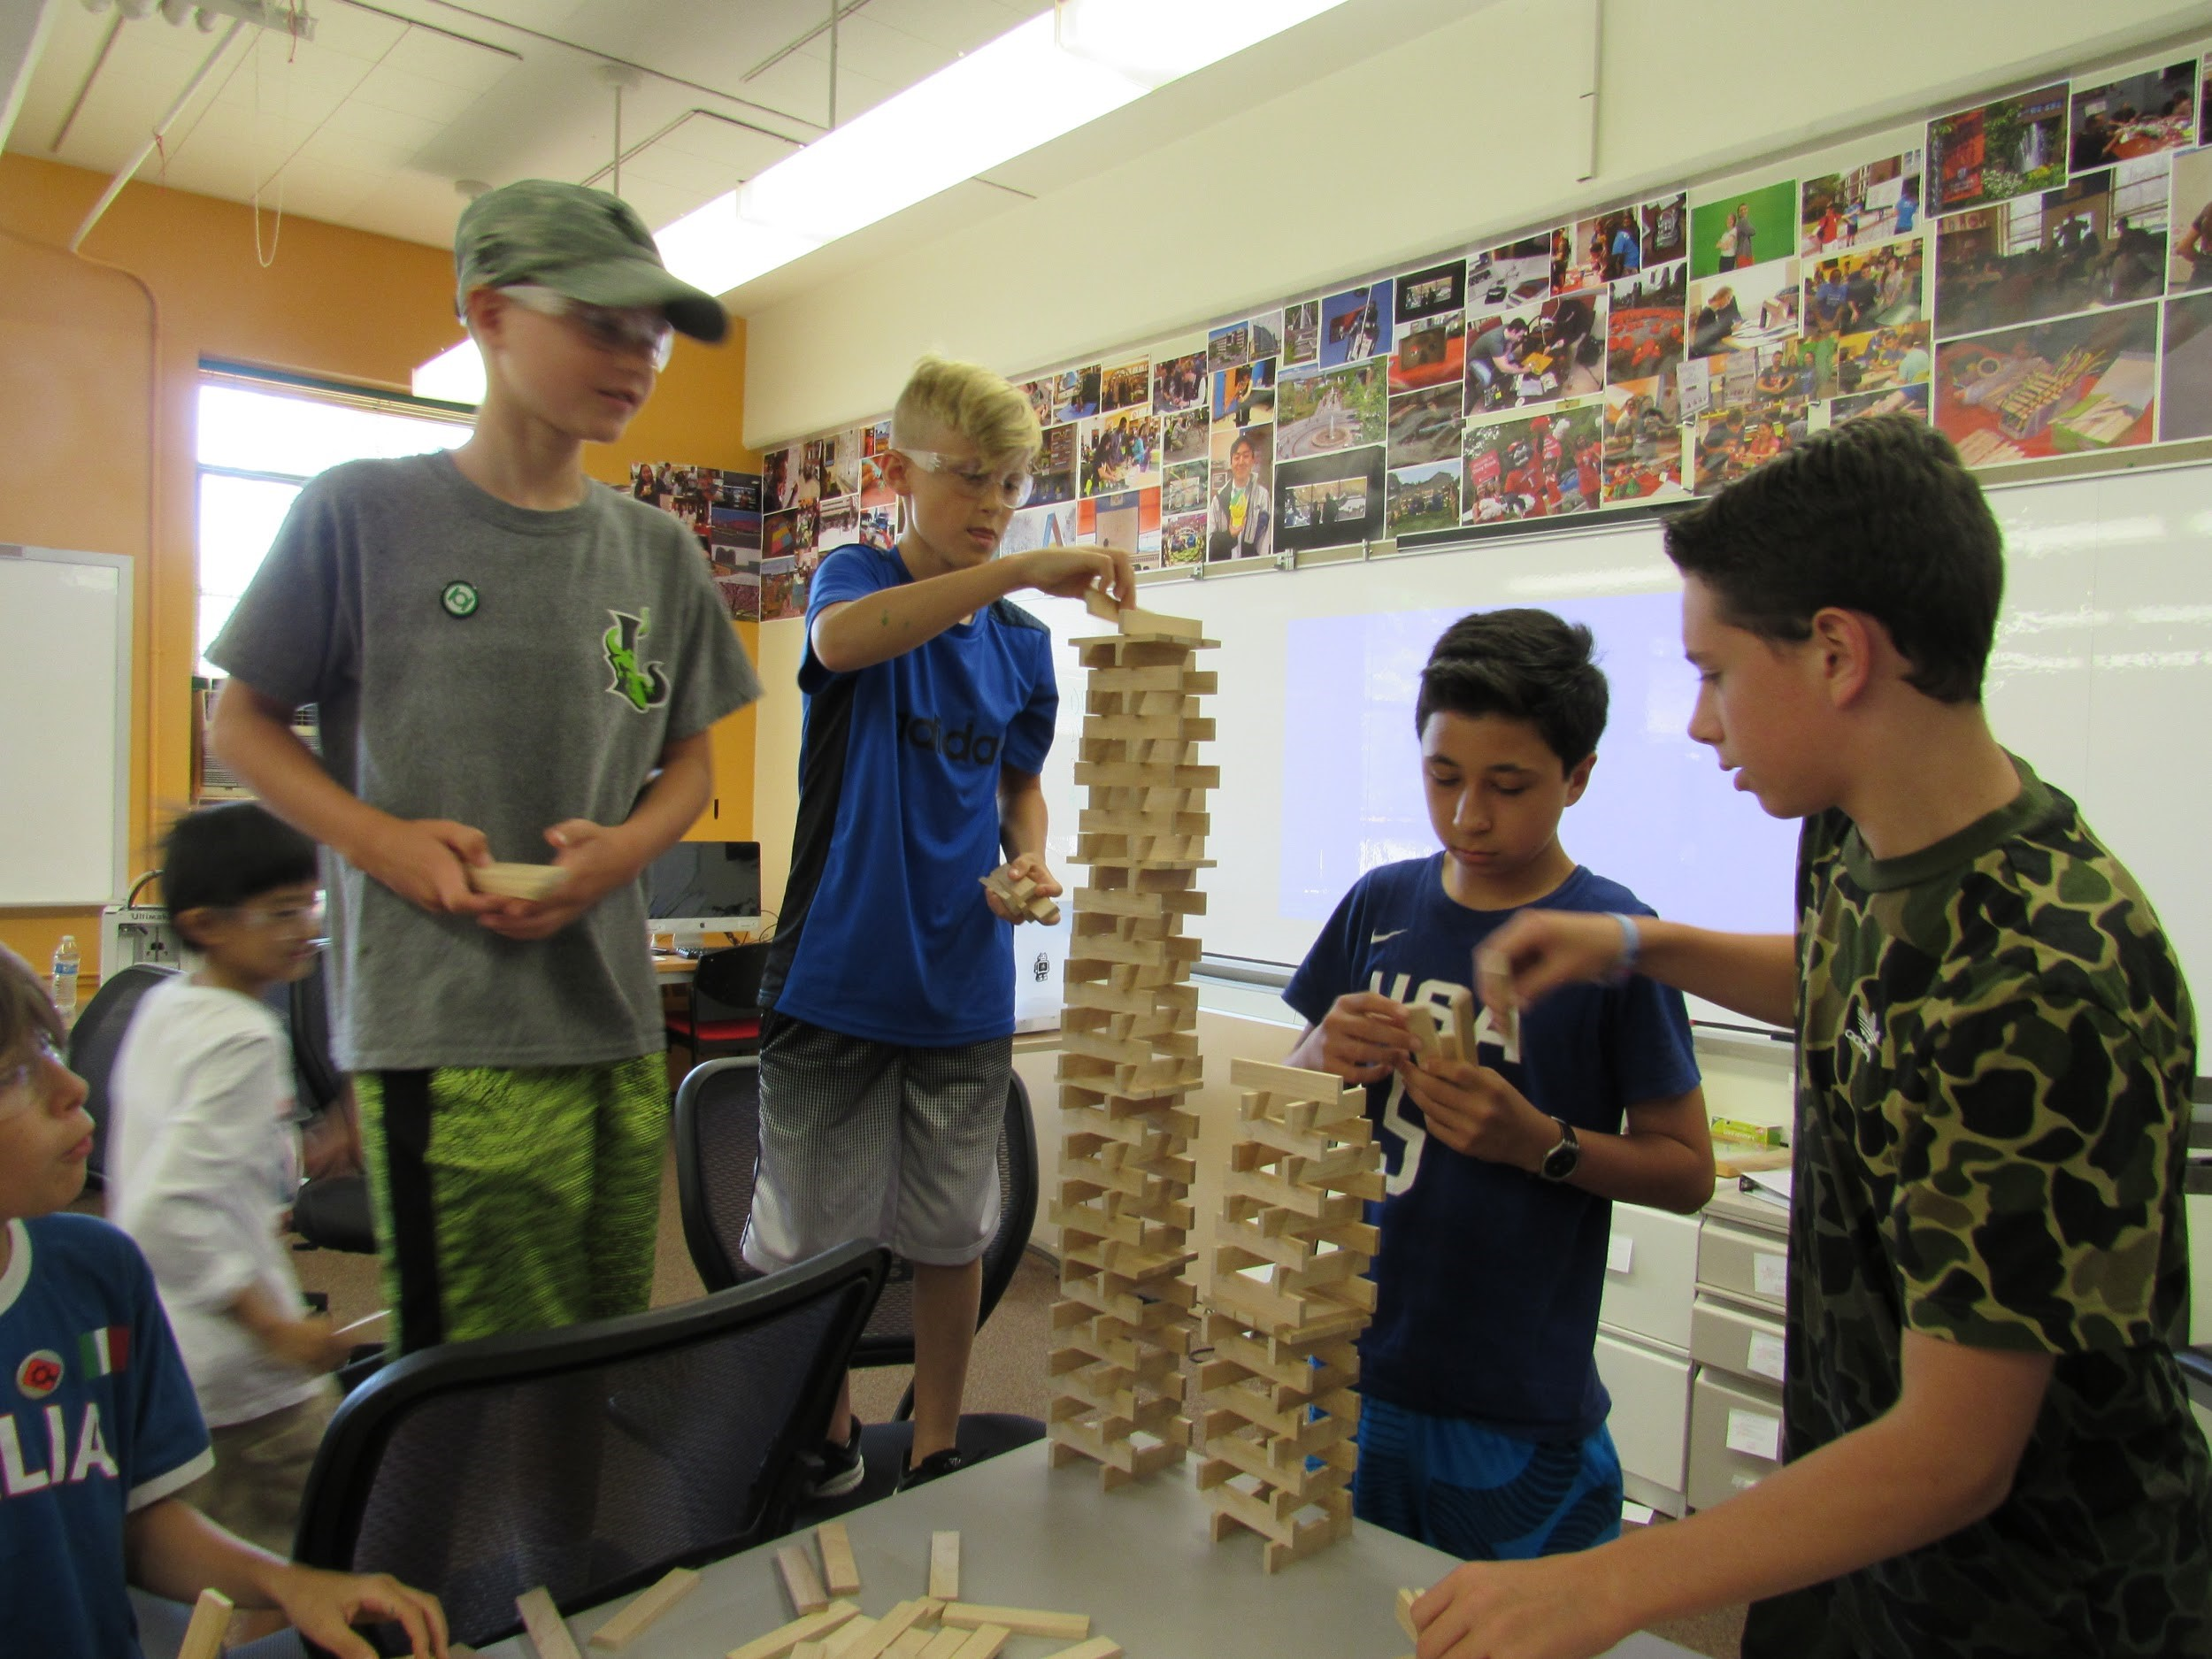 Campers used teamwork and communication to complete their activities.